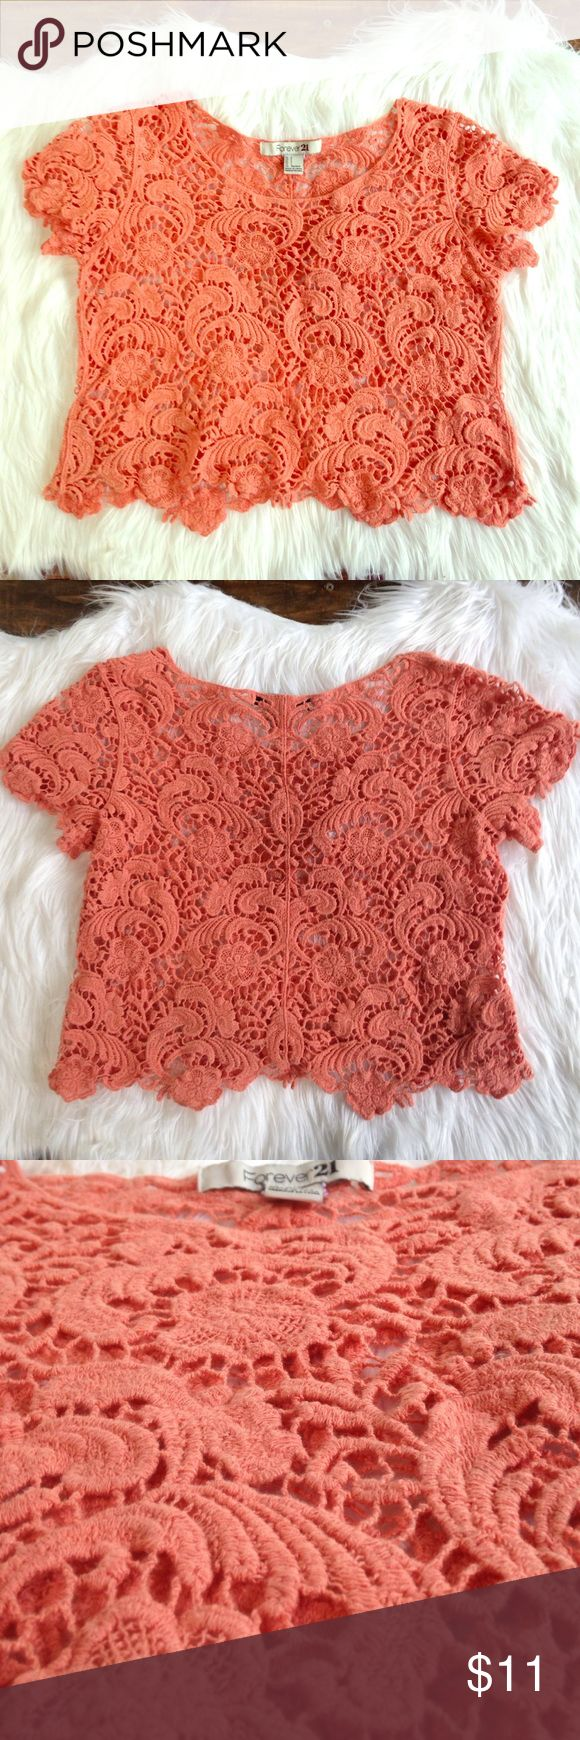 💕Orange Crotchet Swimsuit Top Cover💕 This adorable crochet top goes perfect over a bathing suit top. A white bathing suit looks cute peeking through this coverup. Pair with some shorts and you're ready to go cruising on your bike 🚲👙🍻 Forever 21 Swim Coverups